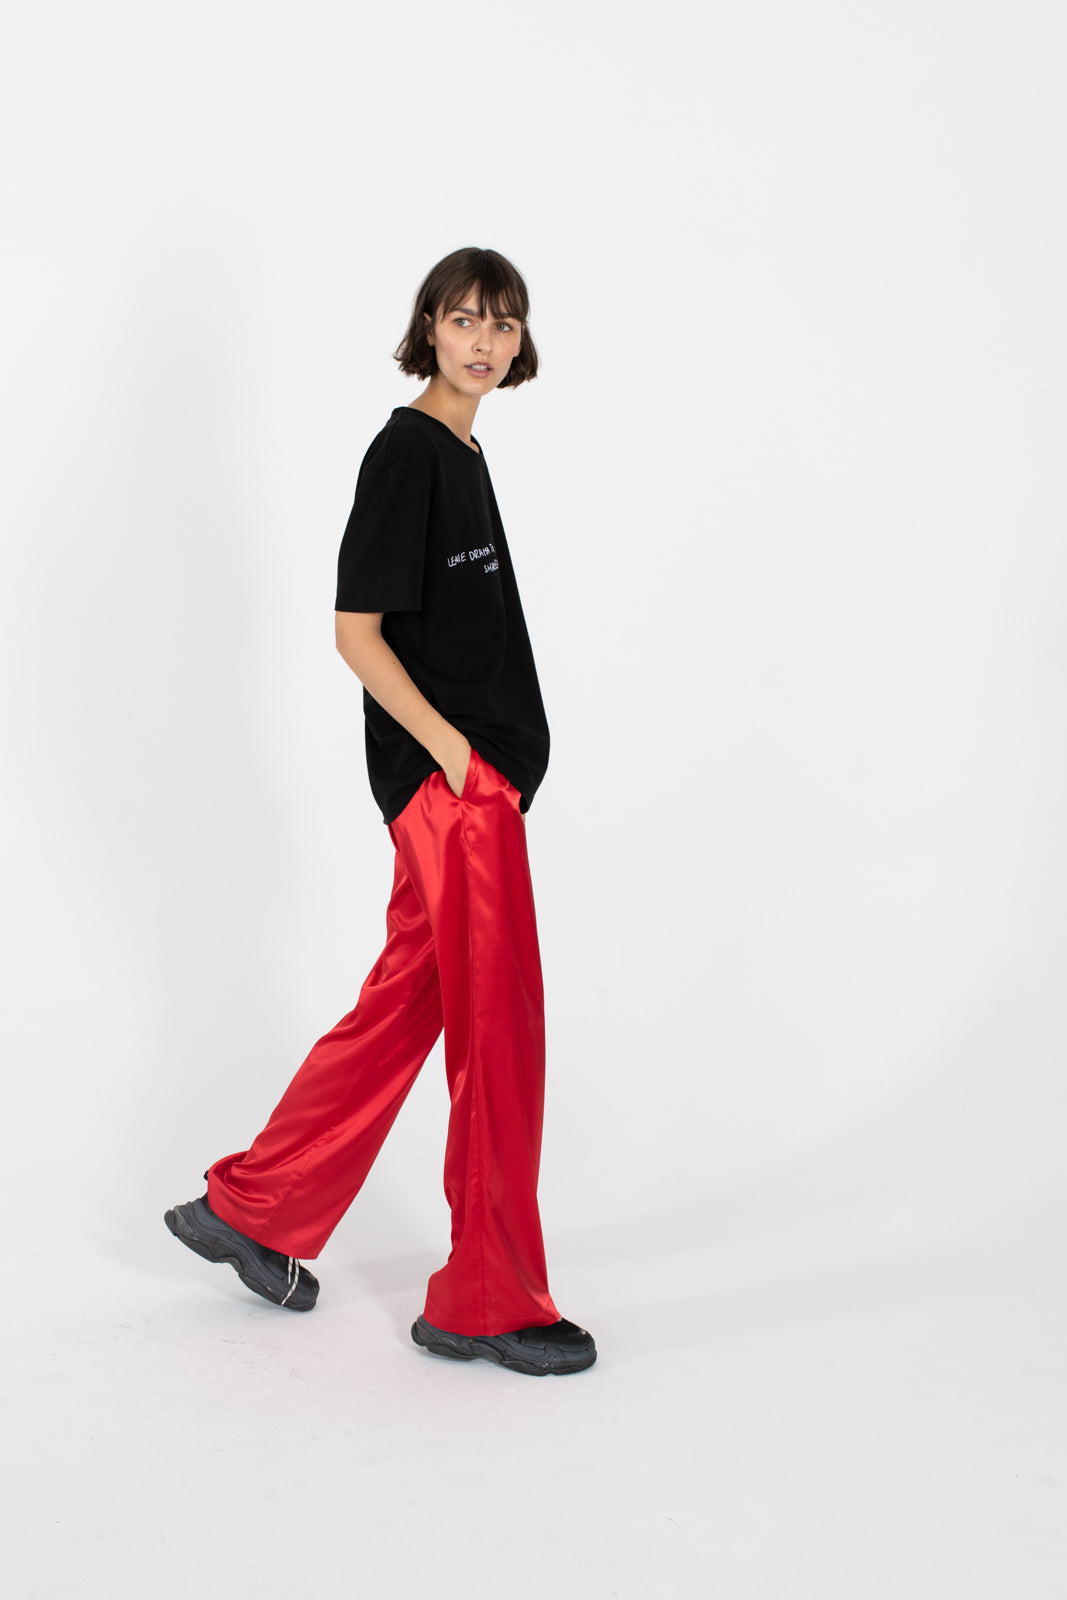 NUDIST-Deep-red-palazzo-pants-alternative-silk-bottom-summer-photoshoot-le-slap.jpg